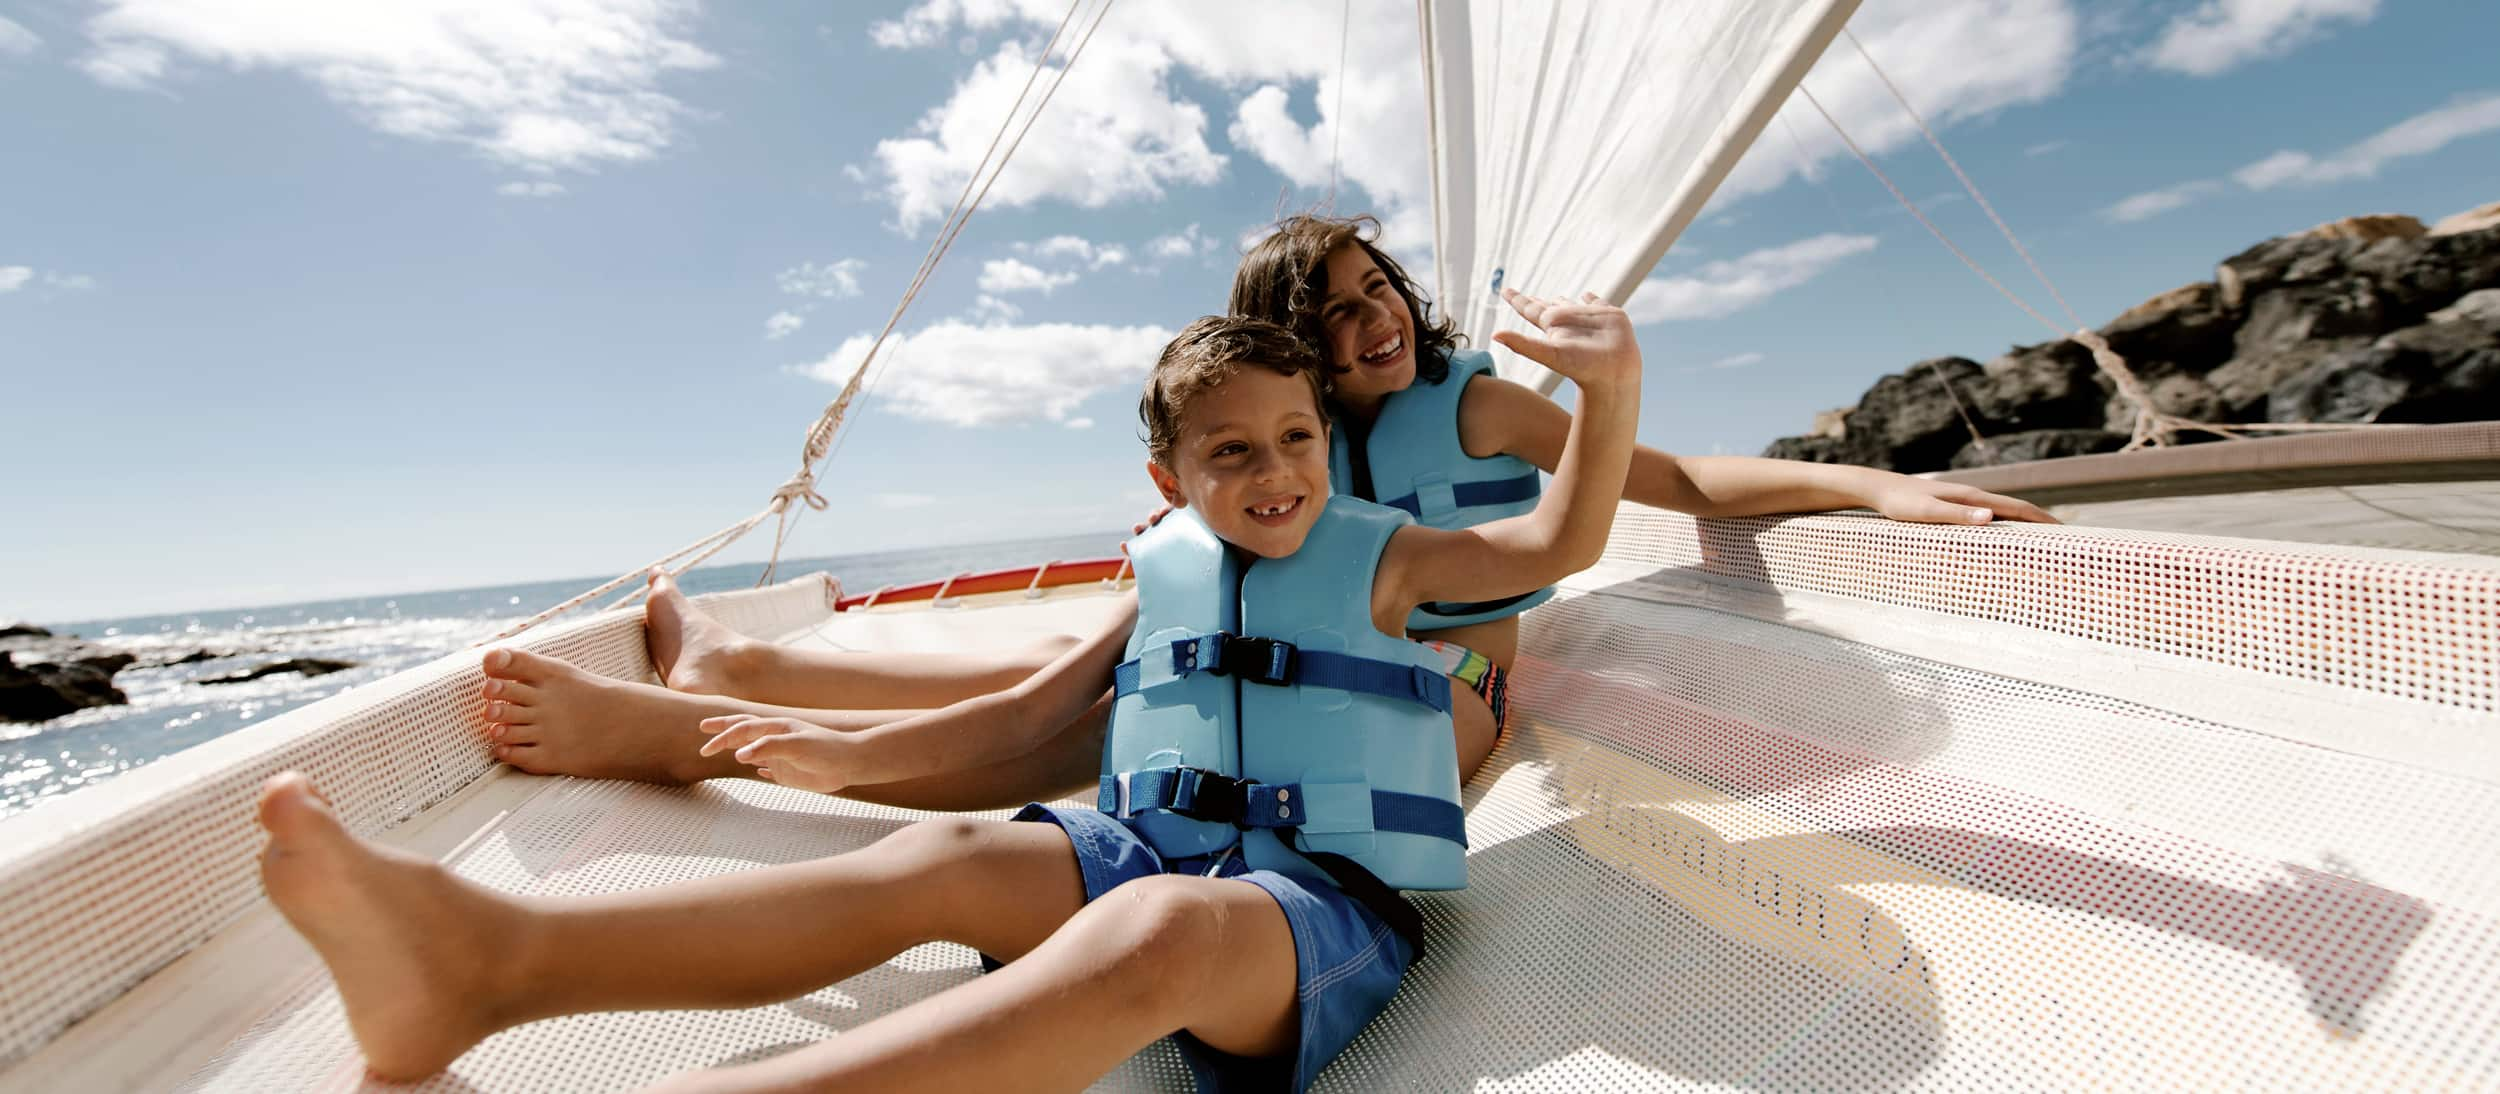 A brother and sister, wearing matching life jackets, smile while riding on a catamaran